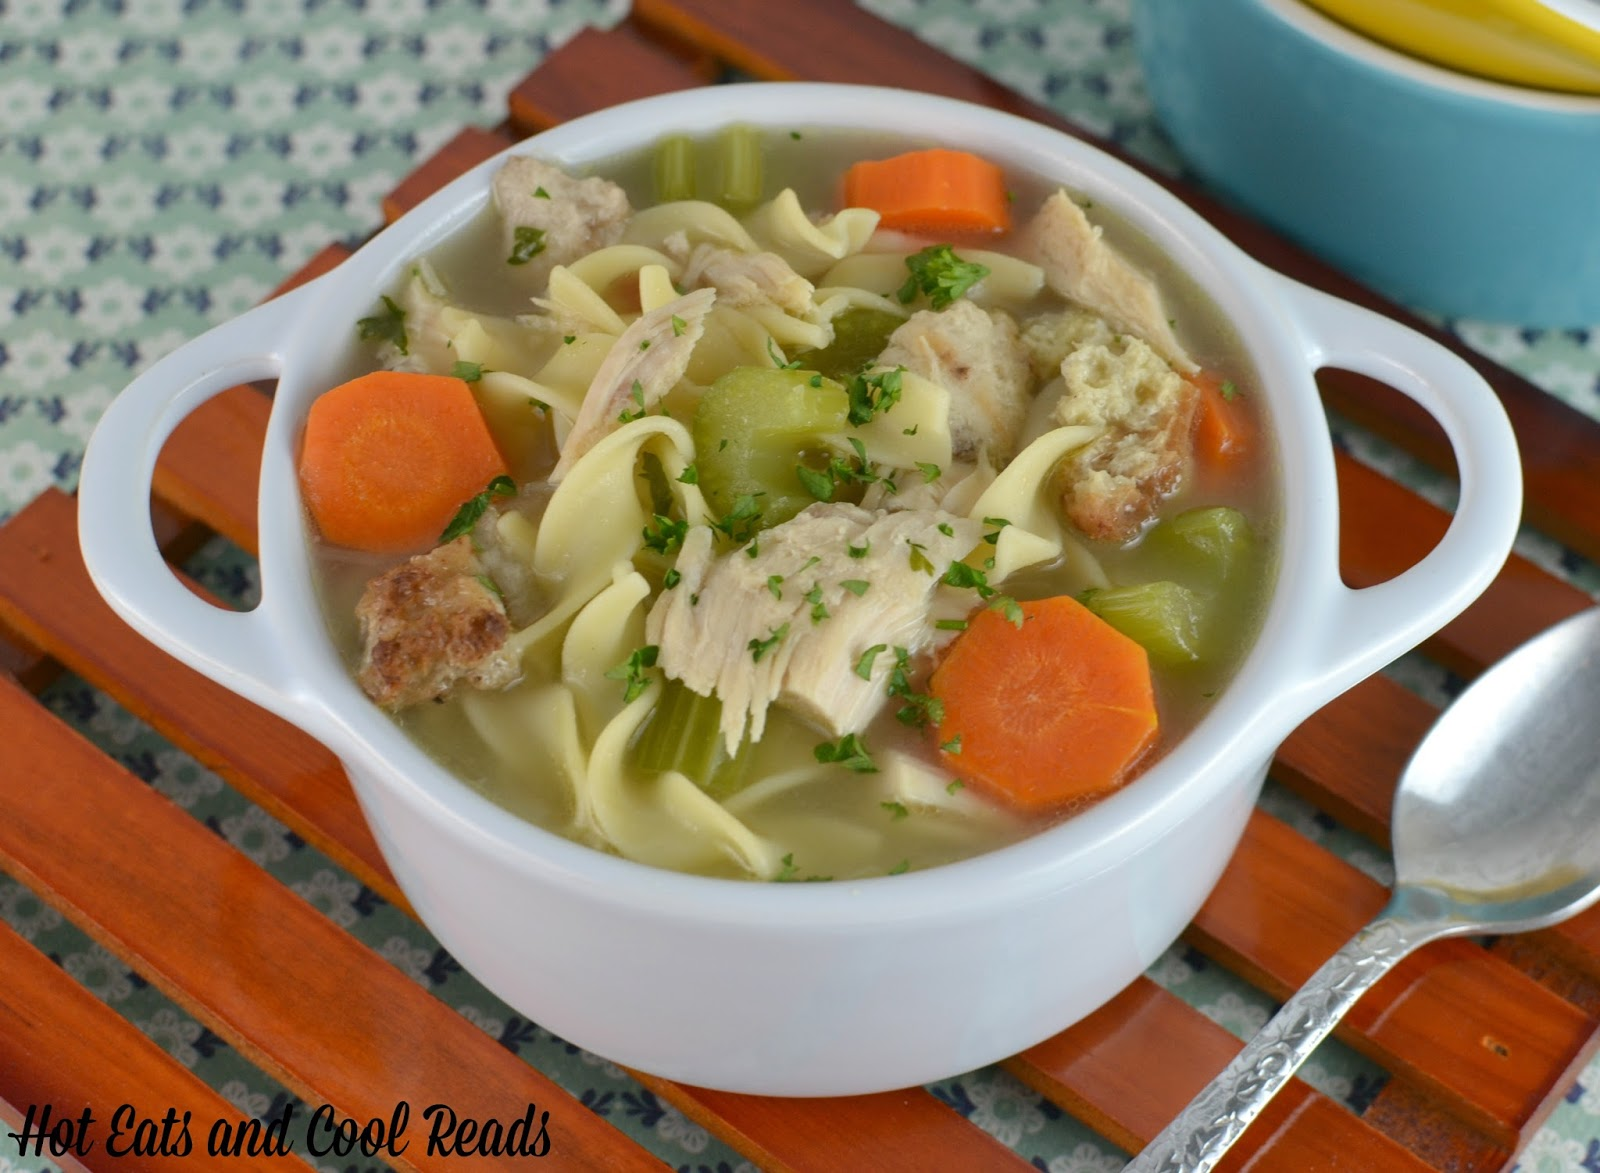 ... Eats and Cool Reads: Roasted Turkey and Stuffing Noodle Soup Recipe